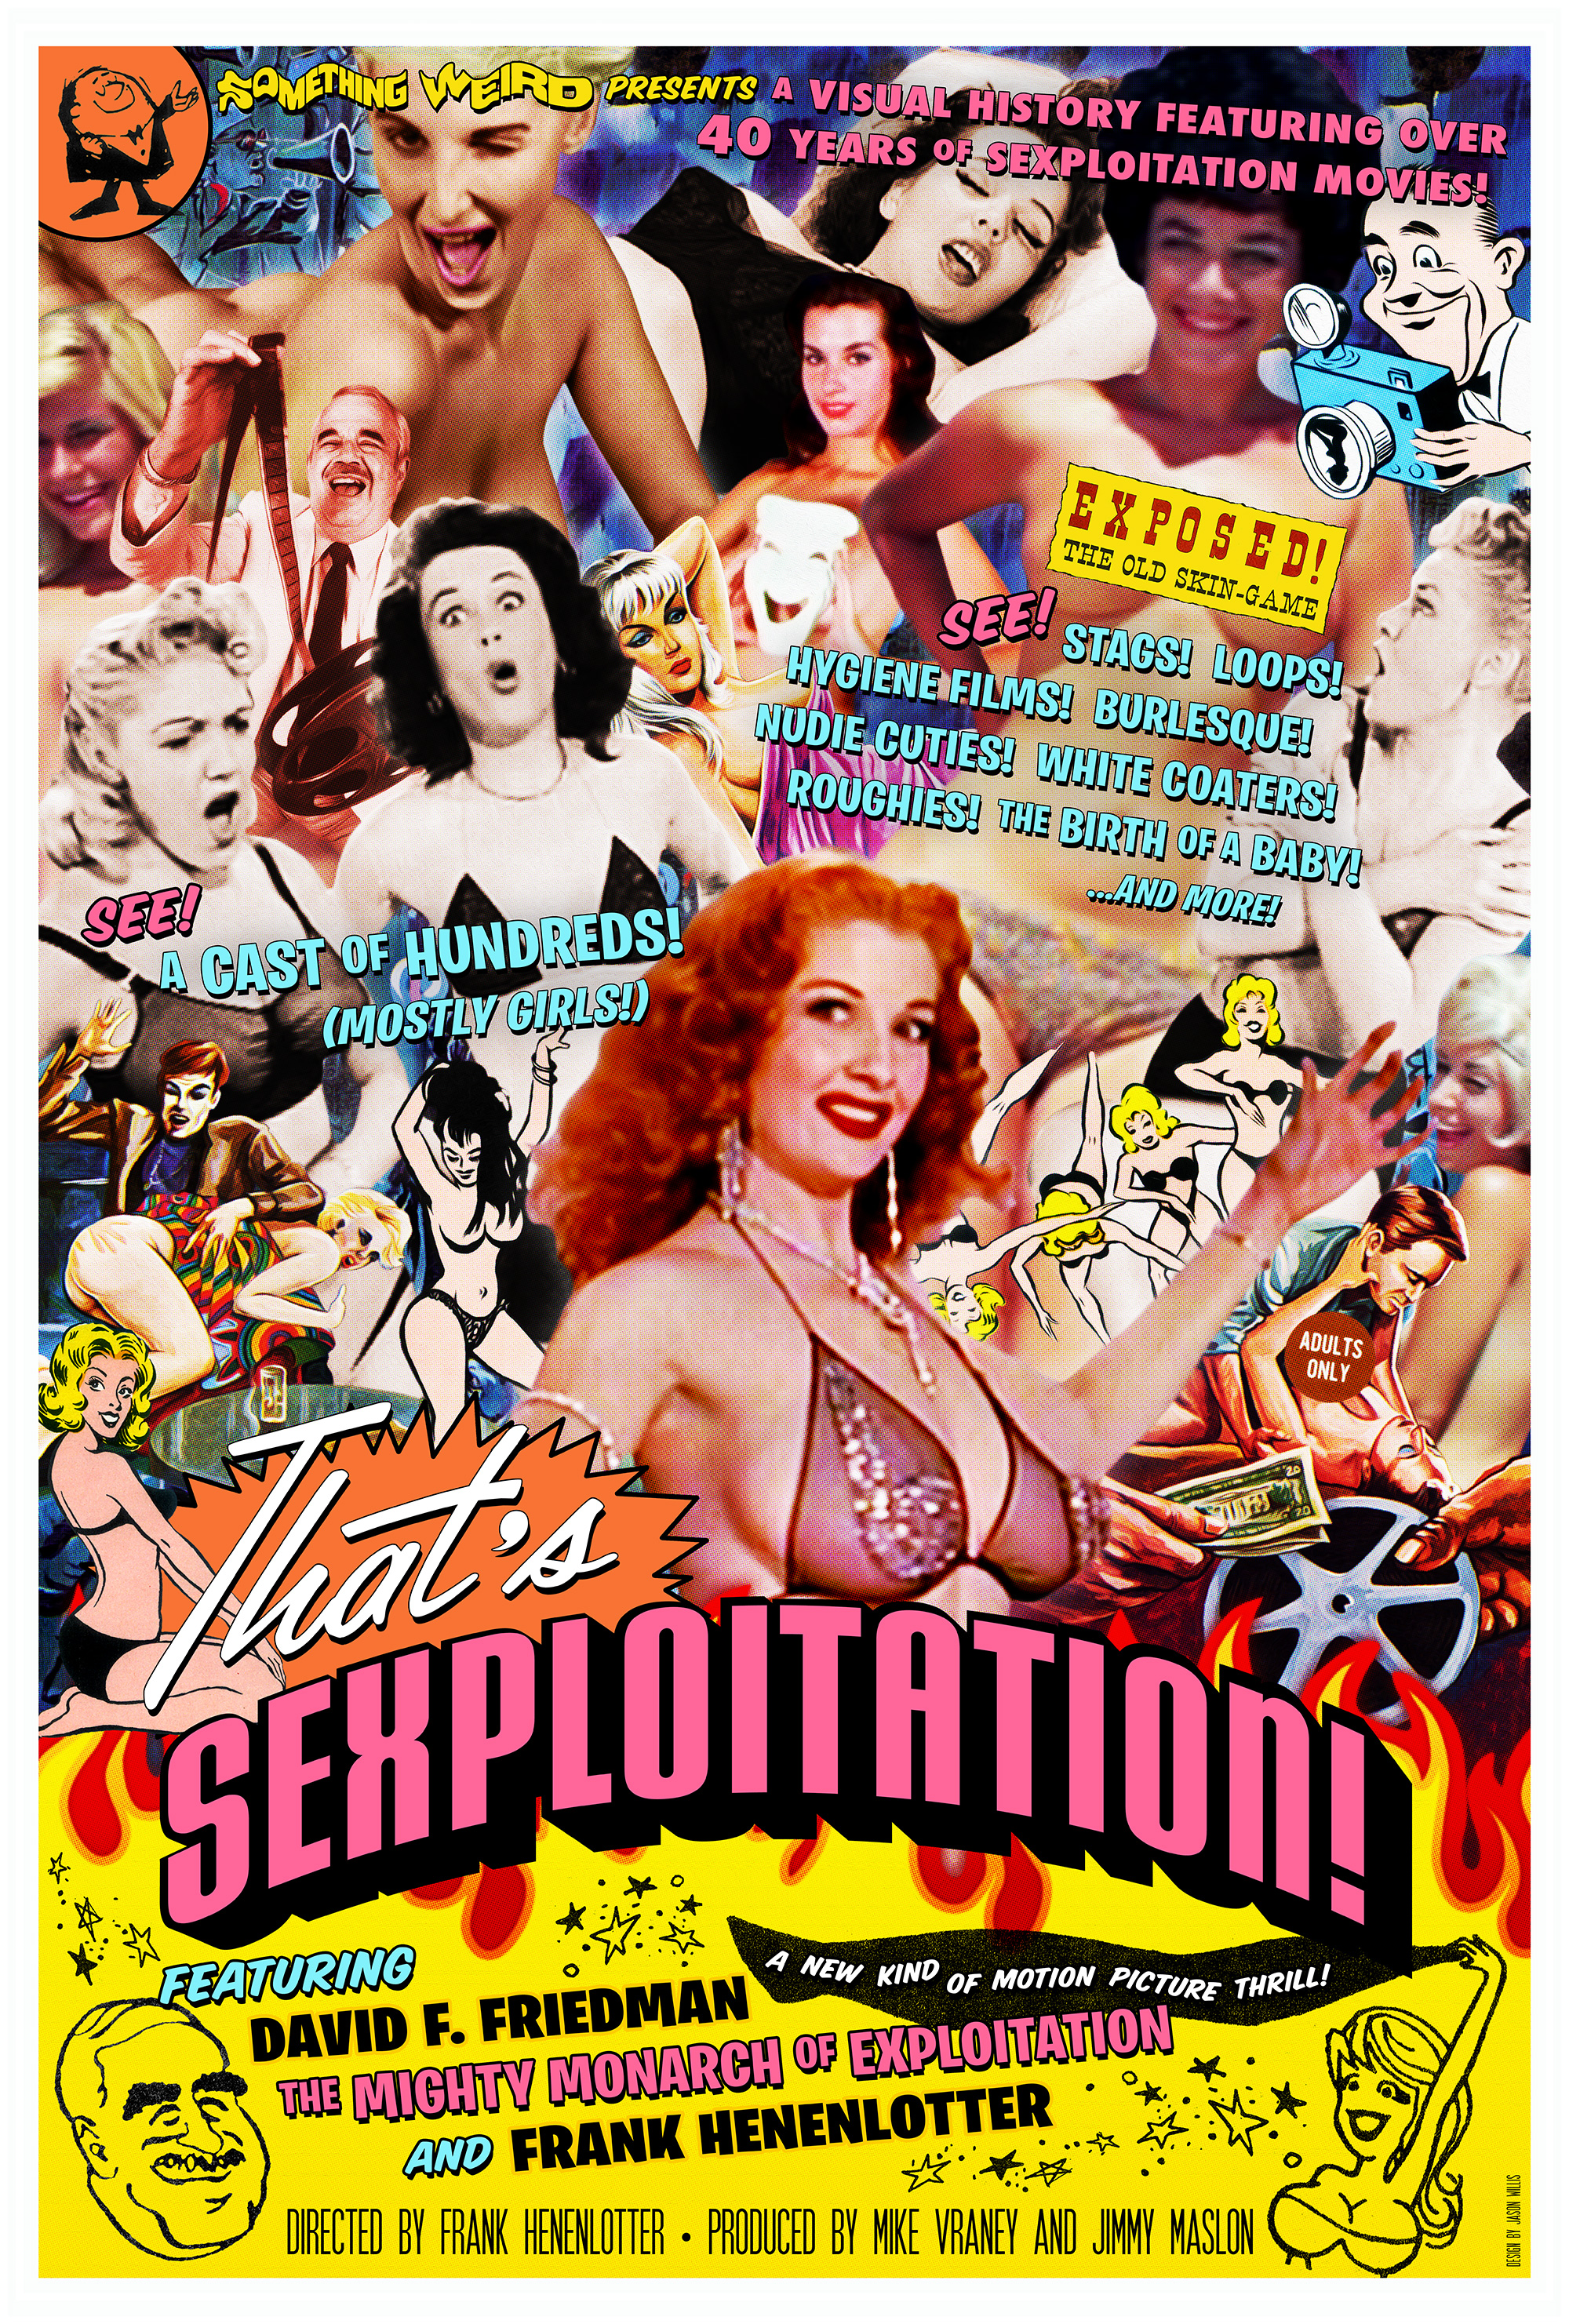 That's Sexploitation - One Sheet Poster Design